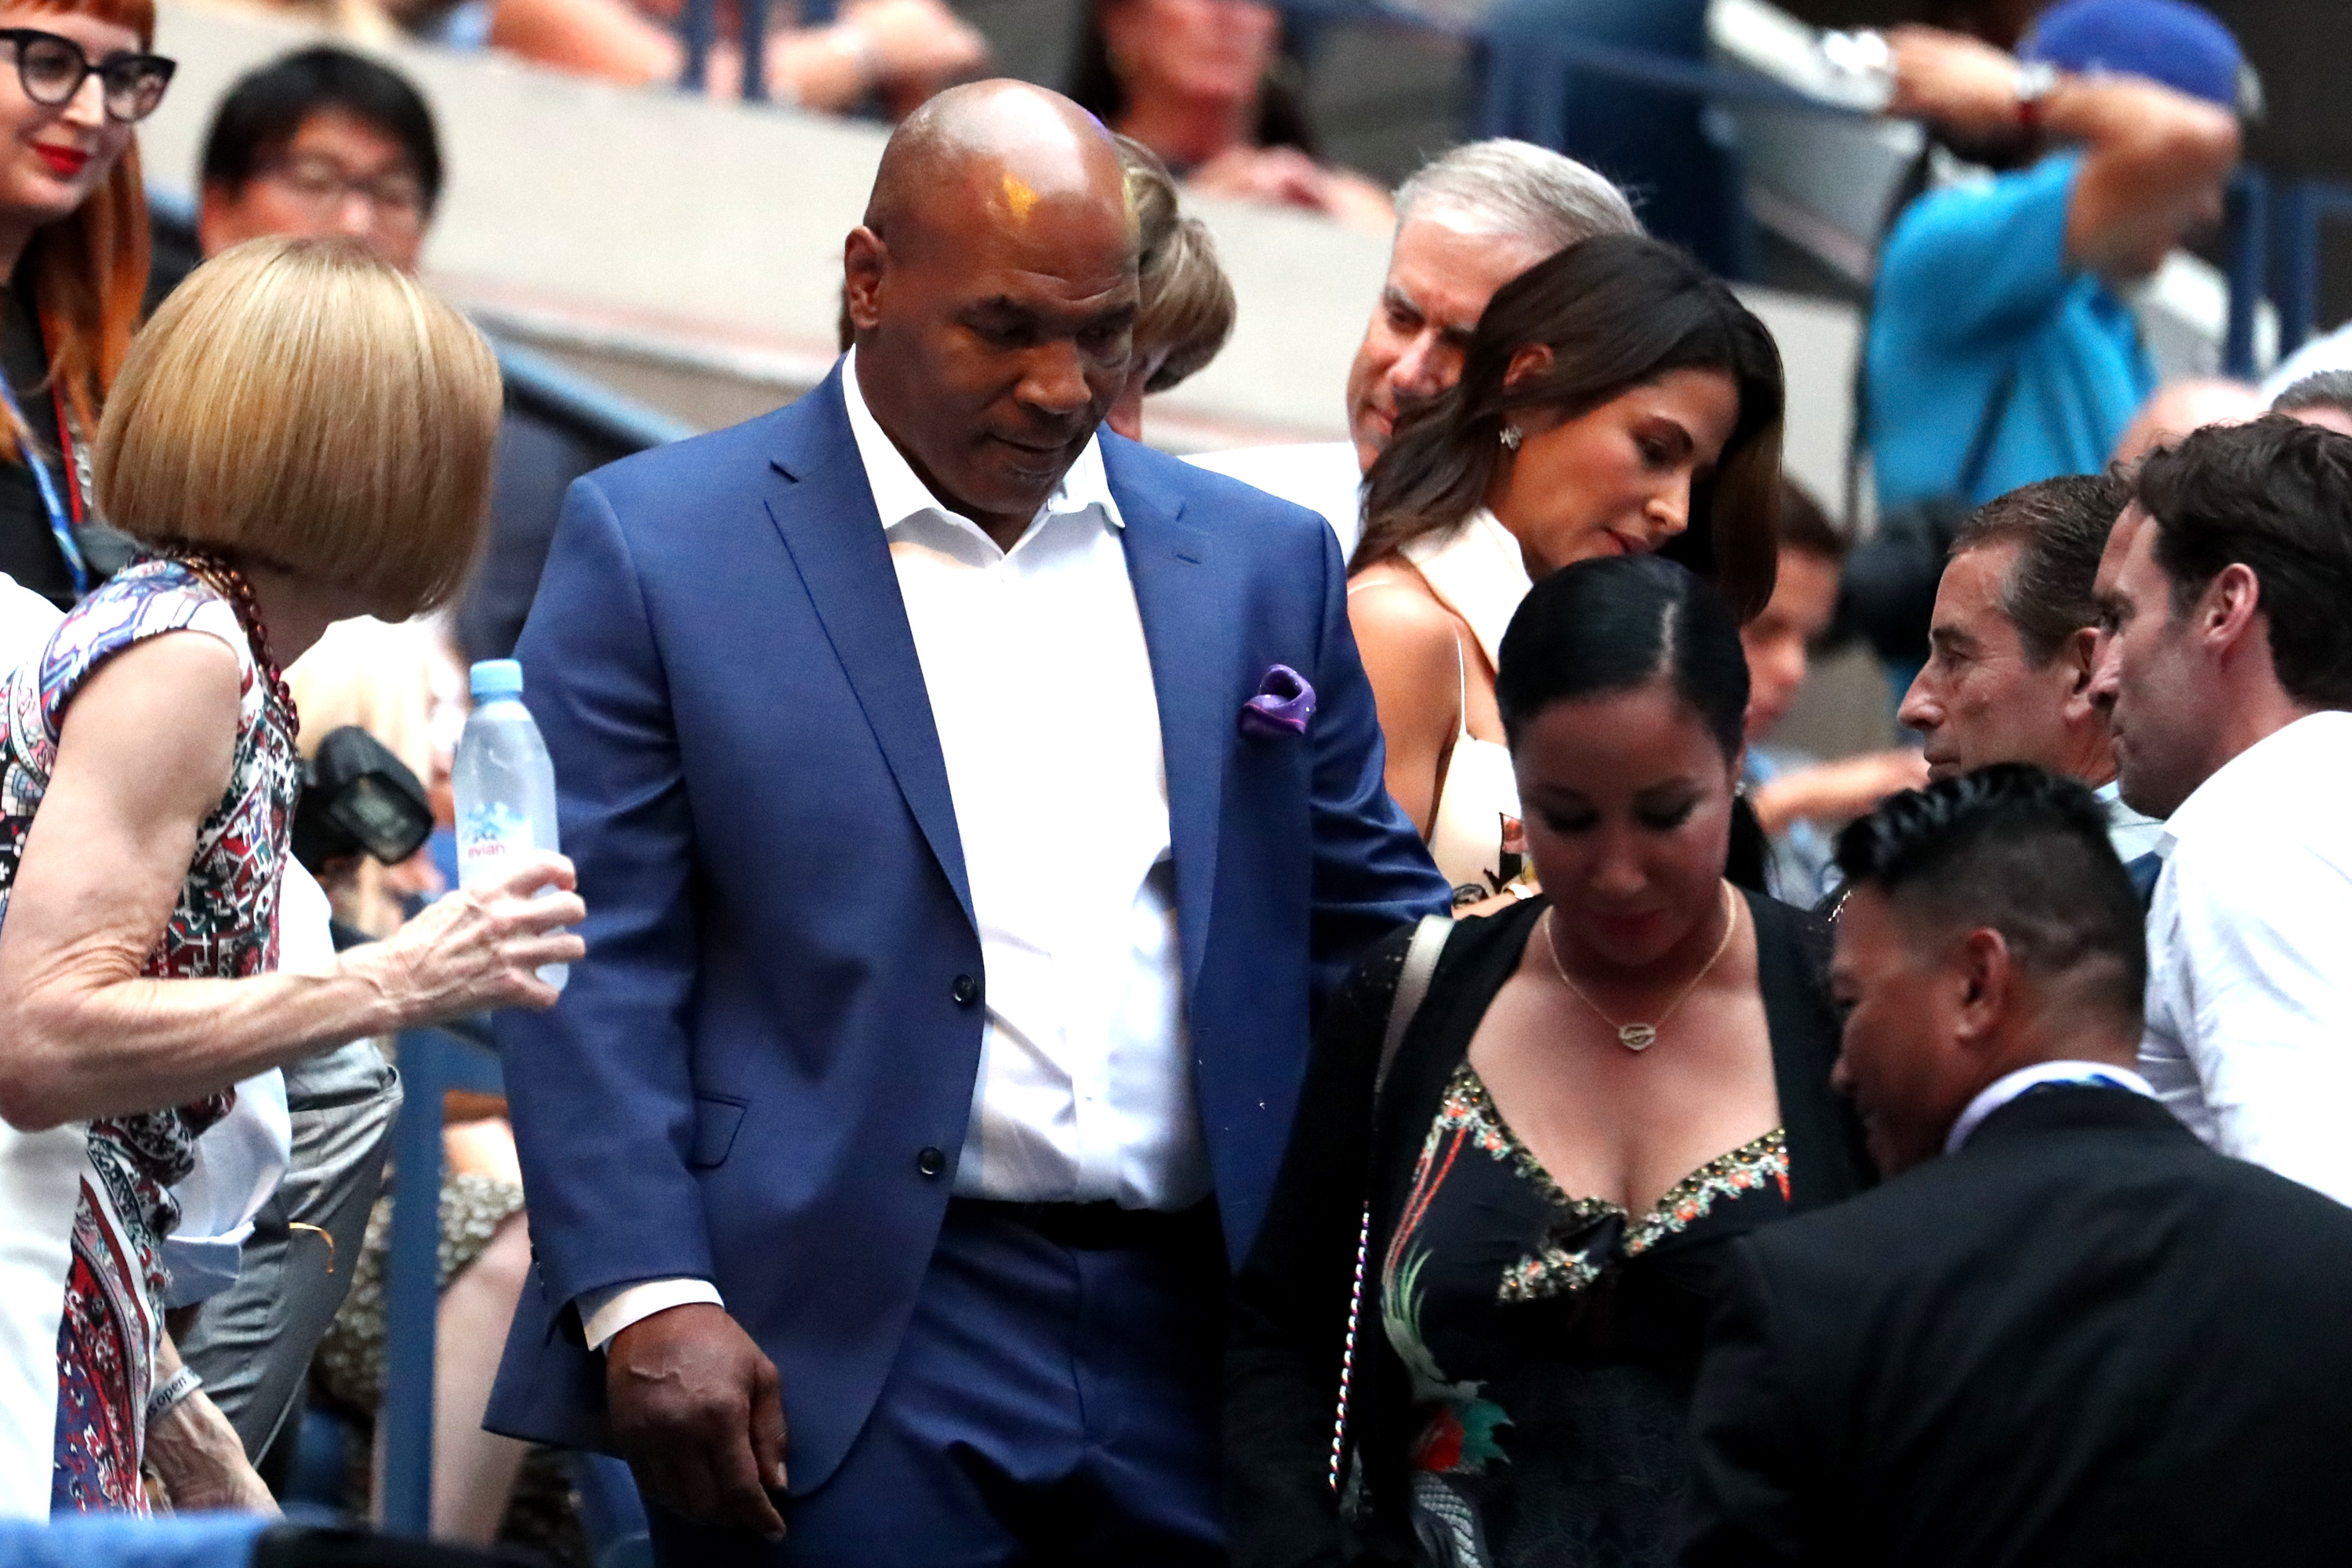 NEW YORK, NY - AUGUST 27: Former professional boxer Mike Tyson attends opening night on Day One of the 2018 US Open at the USTA Billie Jean King National Tennis Center on August 27, 2018 in the Flushing neighborhood of the Queens borough of New York City. (Photo by Al Bello/Getty Images)